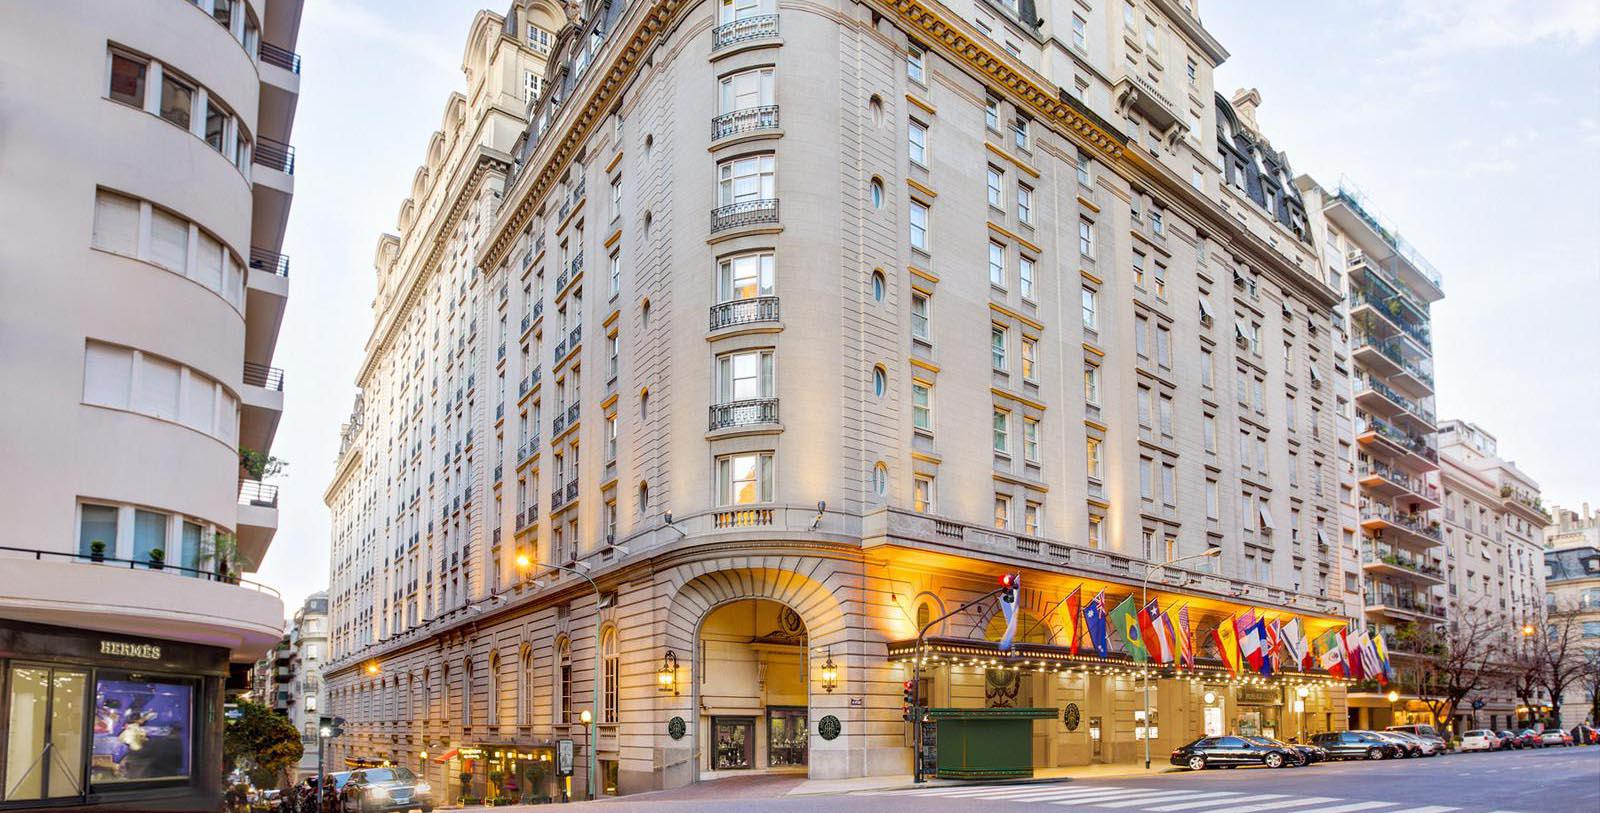 Image of hotel exterior Alvear Palace Hotel, 1932, Member of Historic Hotels Worldwide, in Buenos Aires, Argentina, Special Offers, Discounted Rates, Families, Romantic Escape, Honeymoons, Anniversaries, Reunions